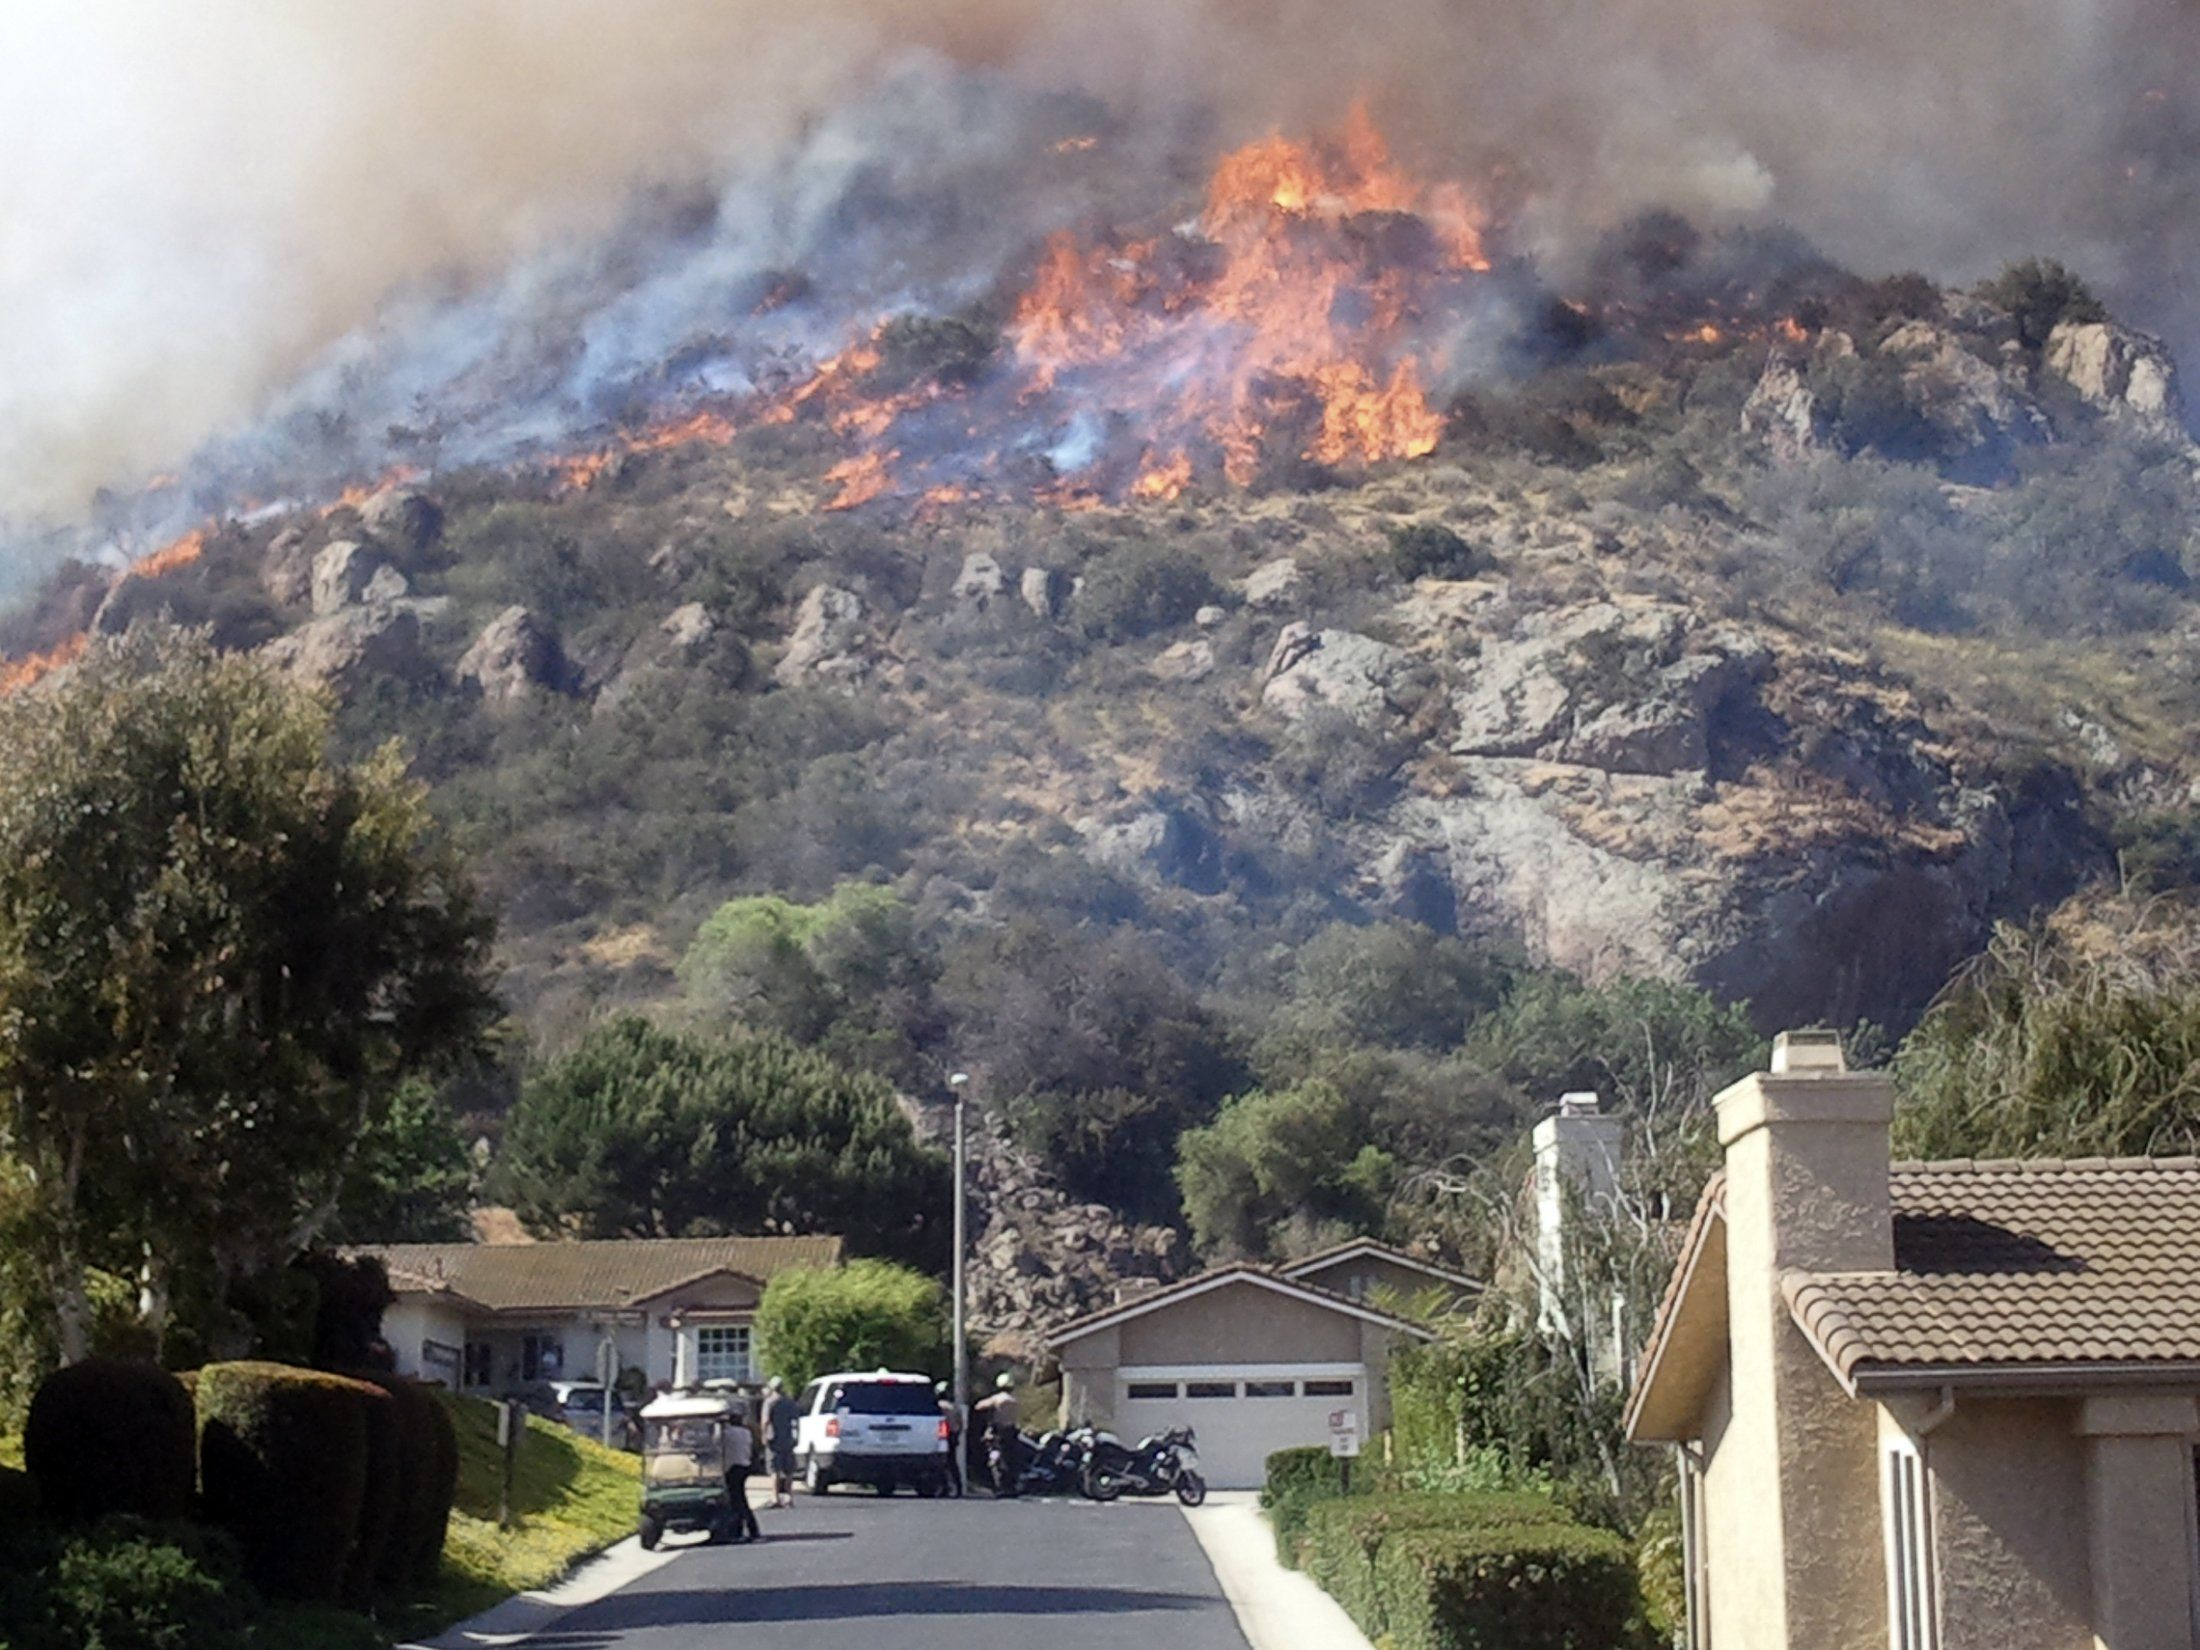 Authorities Have Ordered The Evacuation Of Hundreds Of Homes Due To A Brush Fire In California Reuters Re California Pacific Coast Highway Weather And Climate